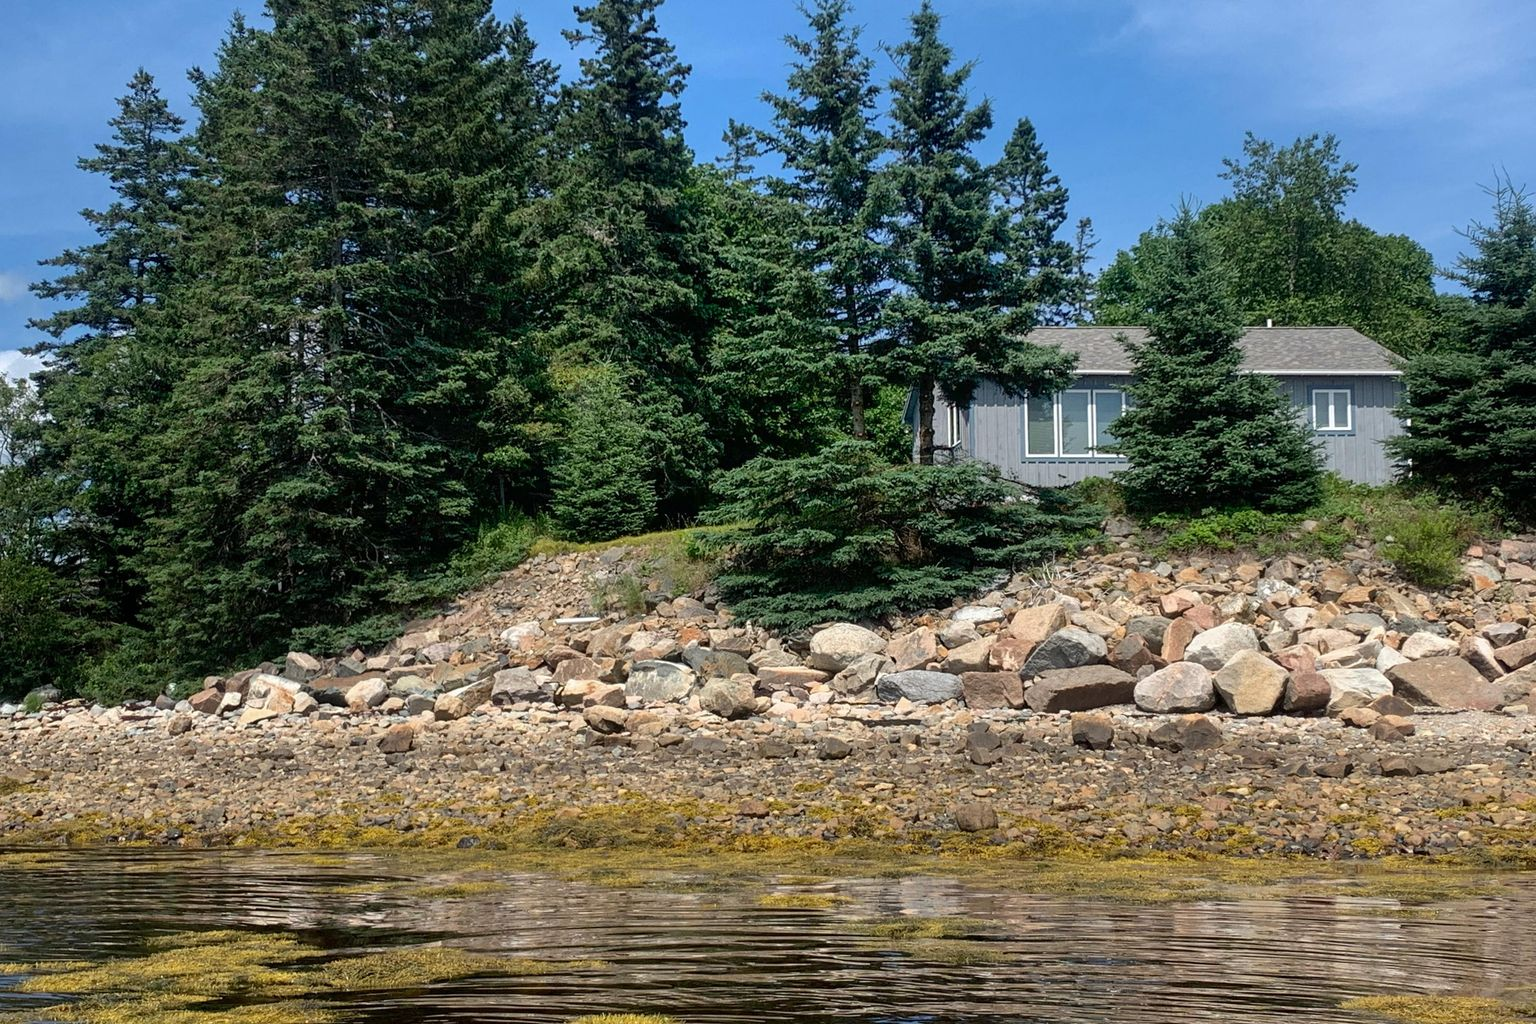 44-14WesternWay-BassHarbor-KS This coastal retreat is located on the shore of Bass Harbor. Show more